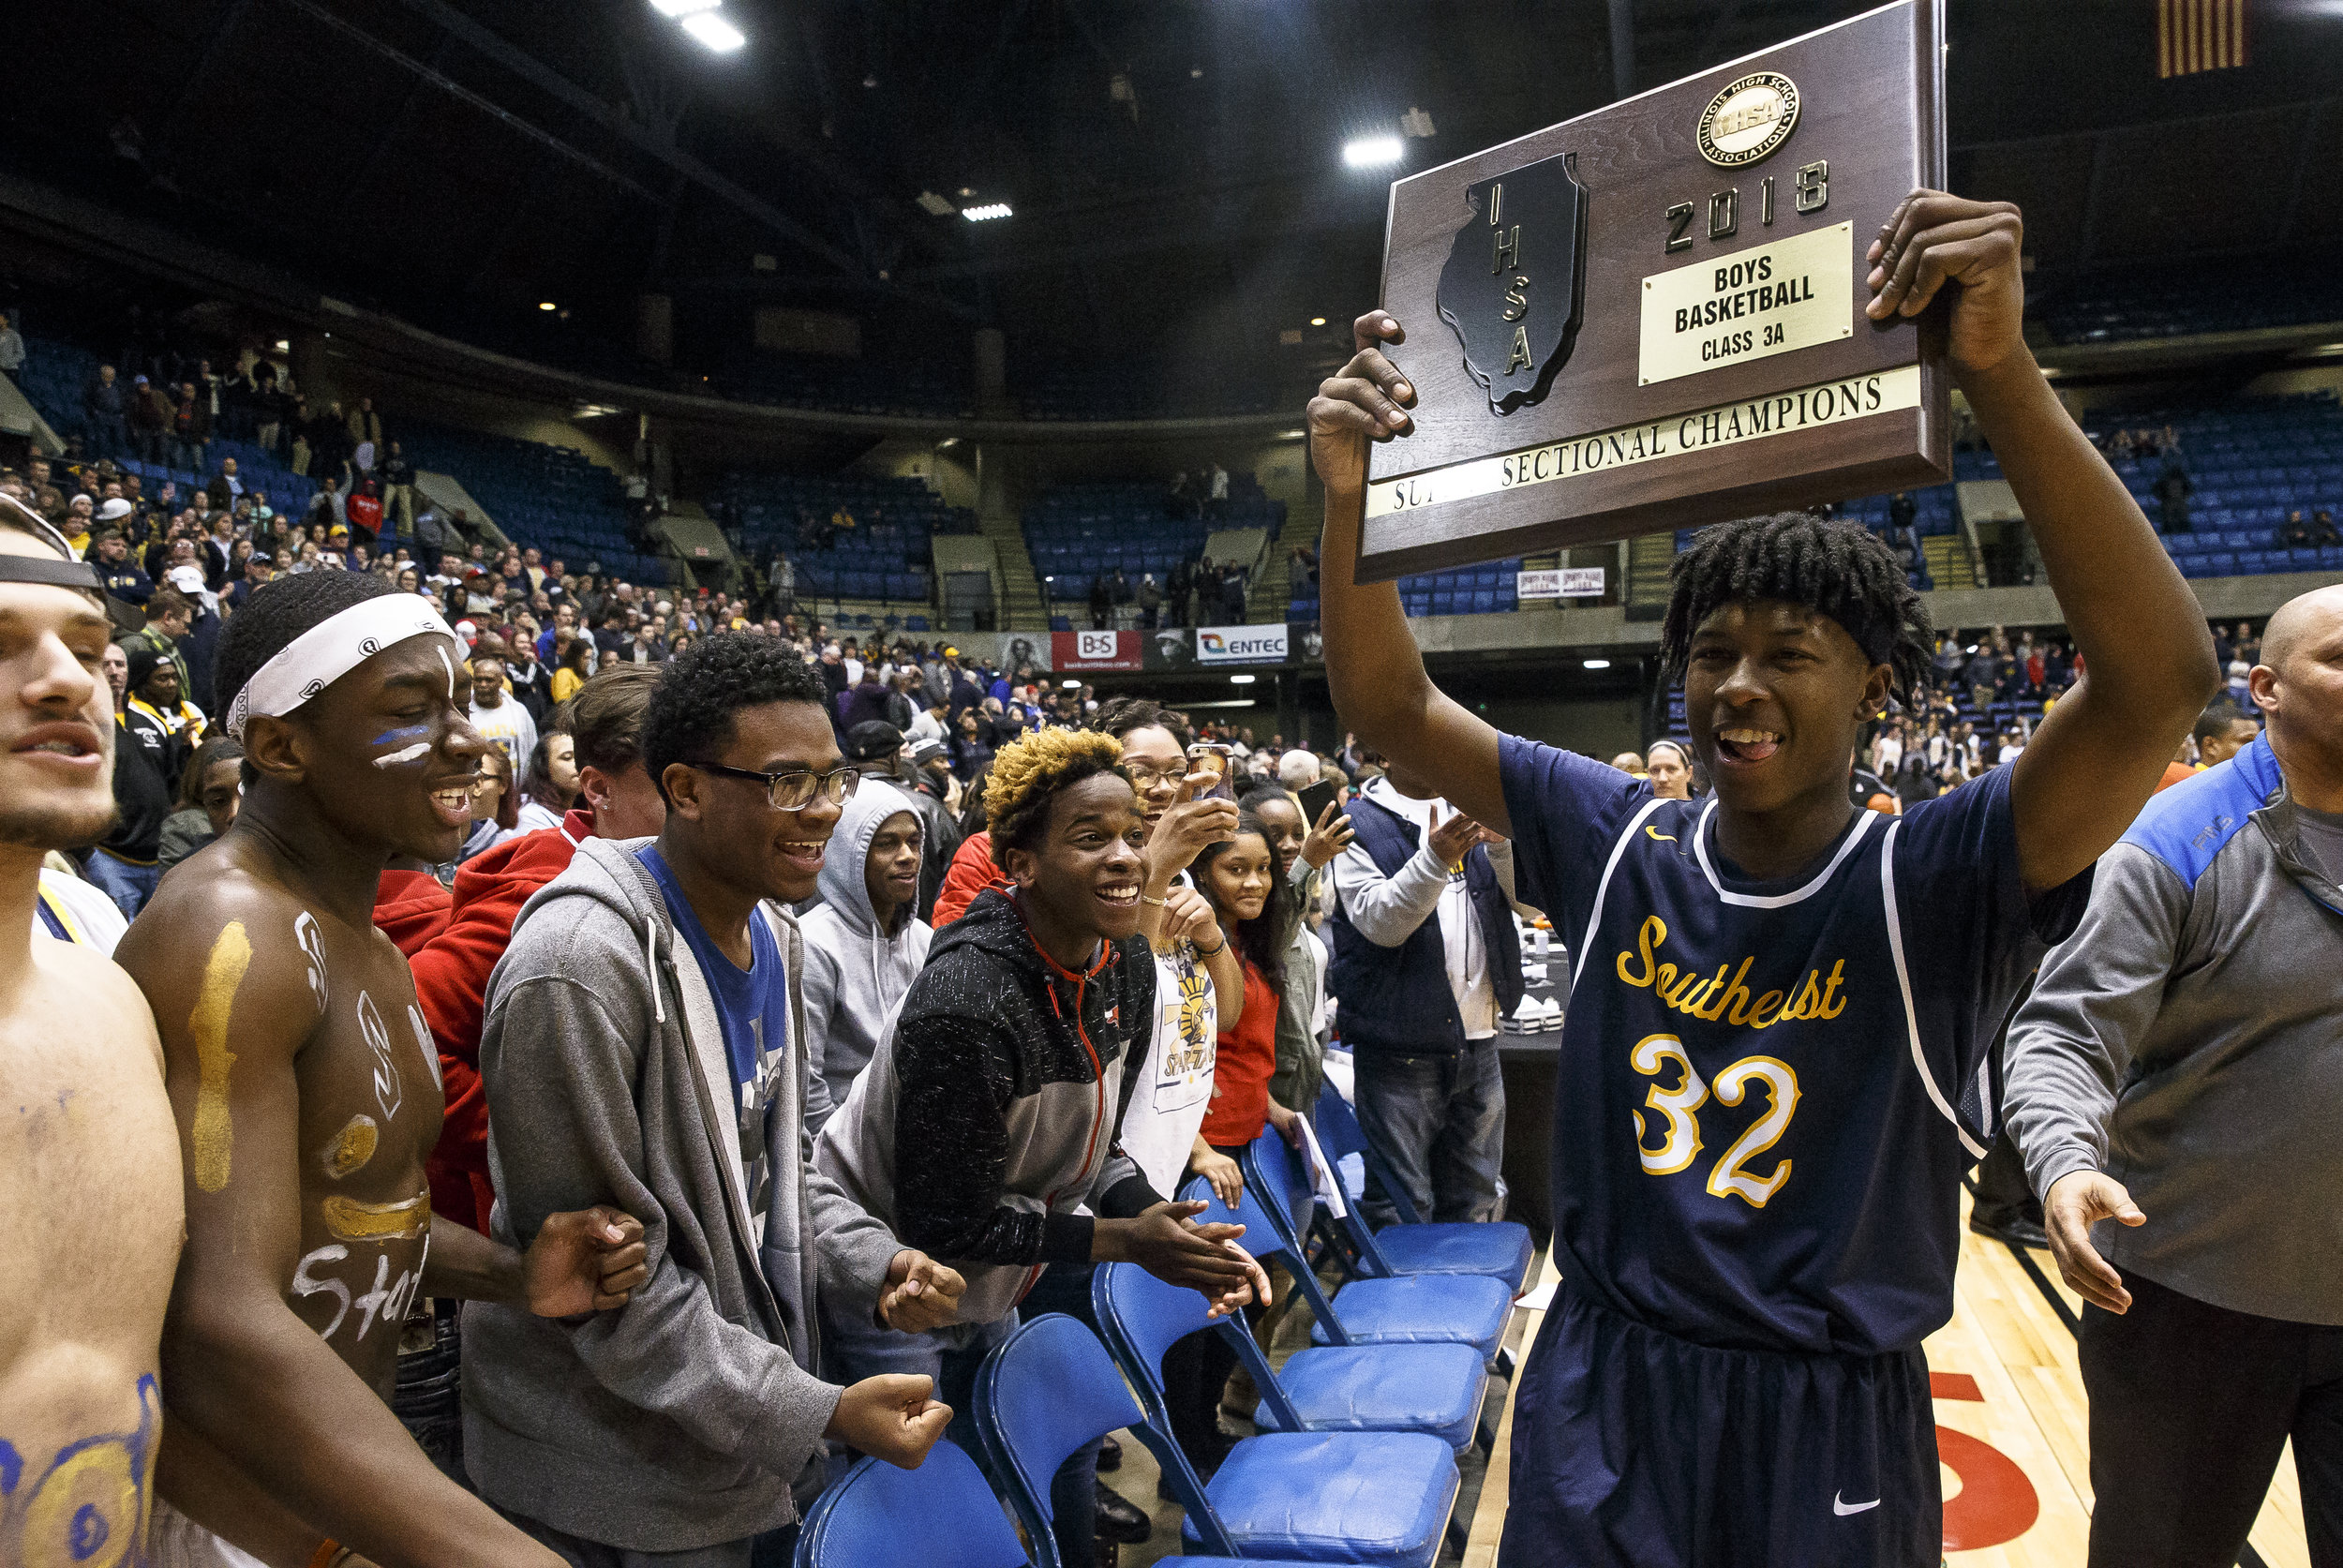 Southeast's Stepheon Sims (32) shares the championship plaque with the Southeast fans after the Spartans defeated Marion 56-51 in the Class 3A Springfield Supersectional at the Bank of Springfield Center, Tuesday, March 13, 2018, in Springfield, Ill. [Justin L. Fowler/The State Journal-Register]